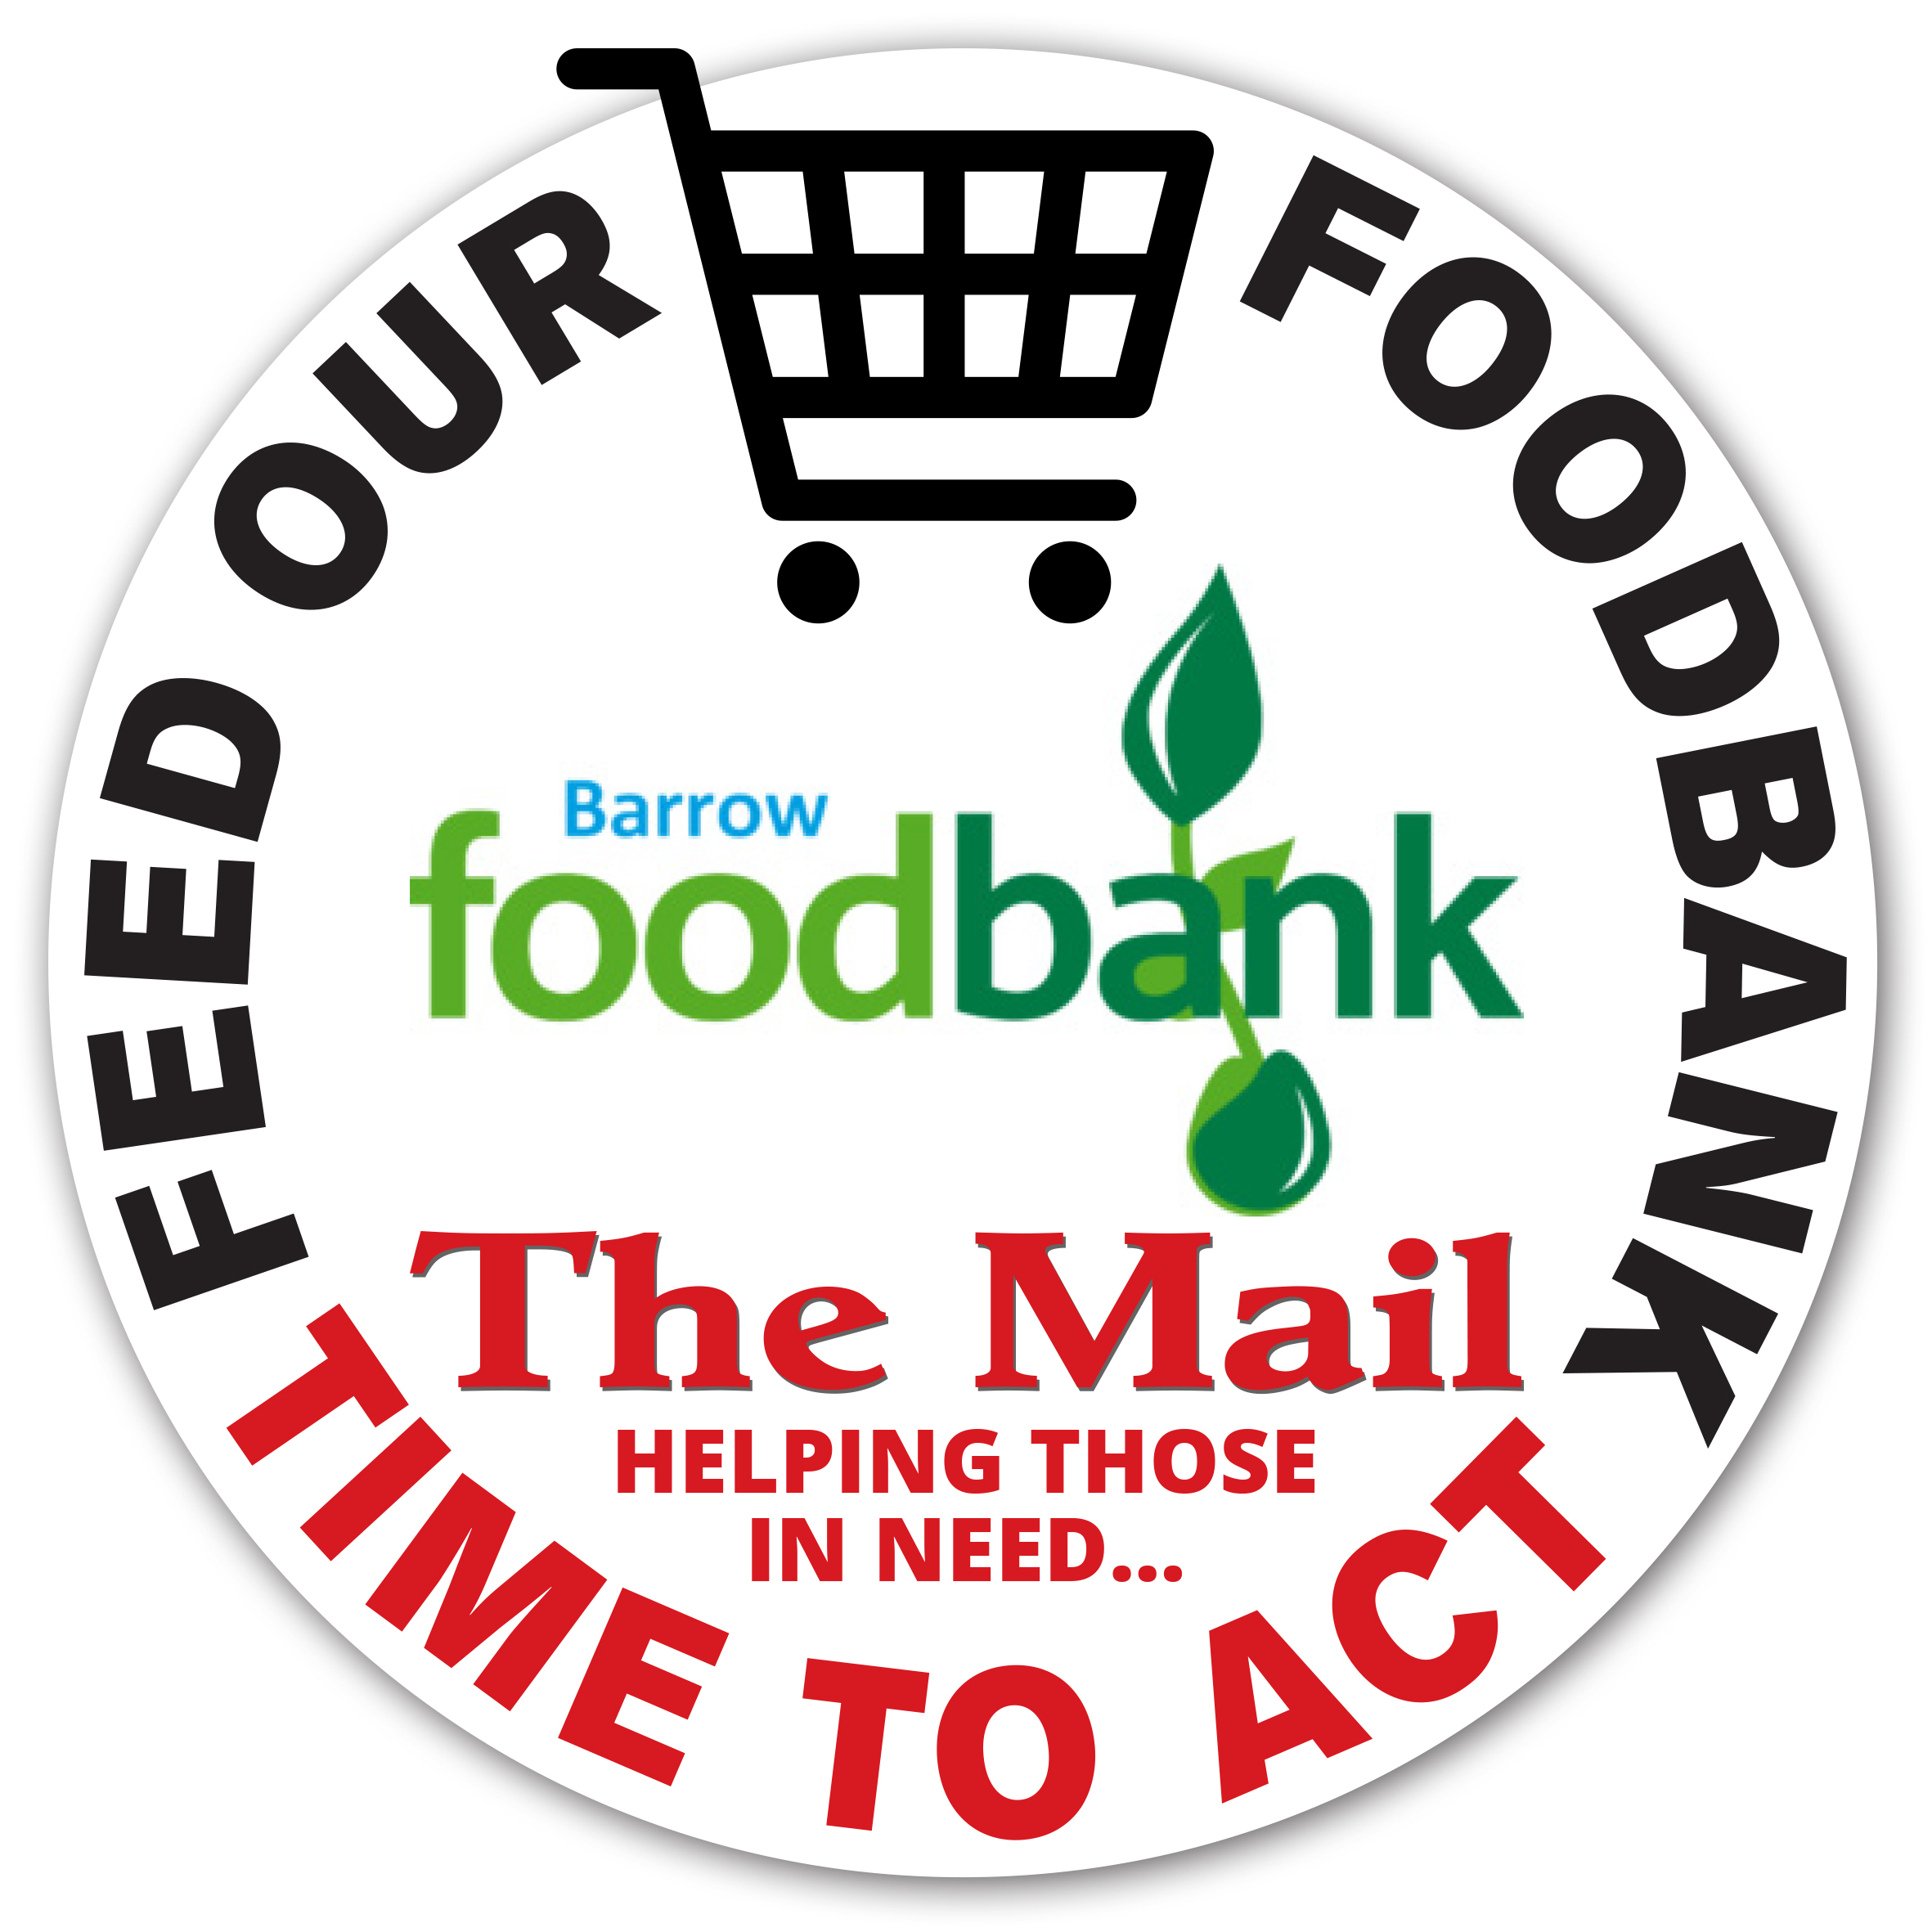 CAMPAIGN: The Mail's Feed our Foodbank campaign logo